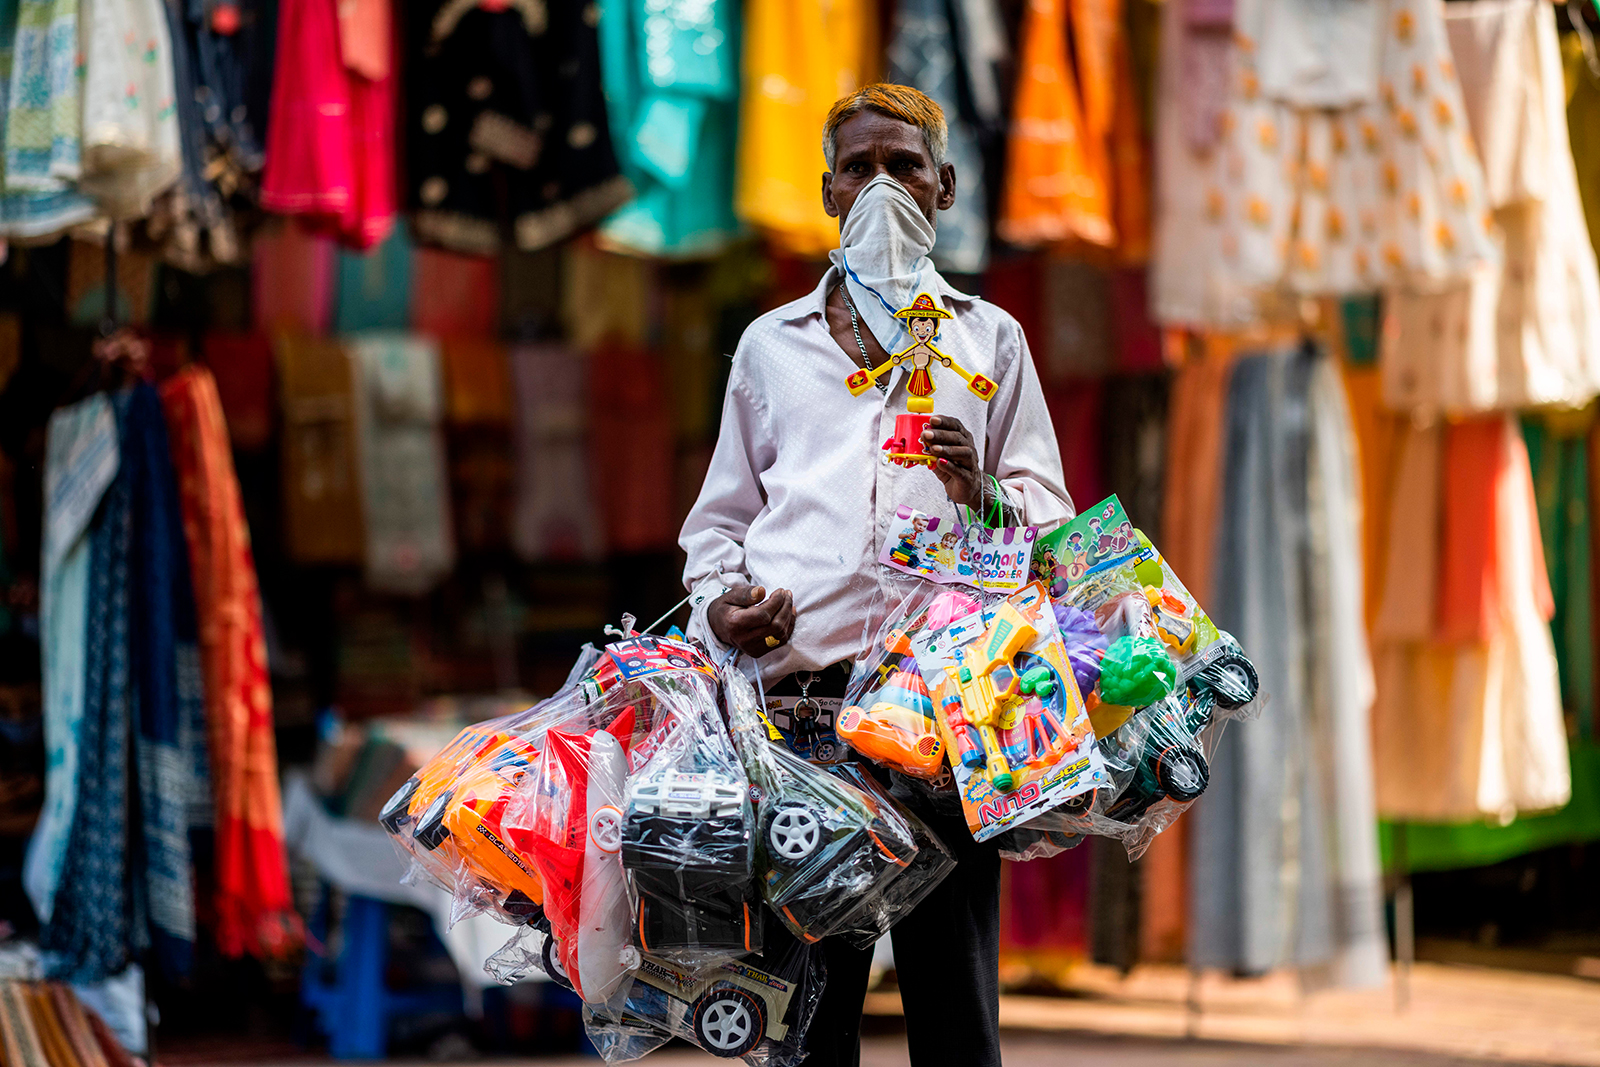 A vendor selling toys waits for customers in a market area in New Delhi on July 5.